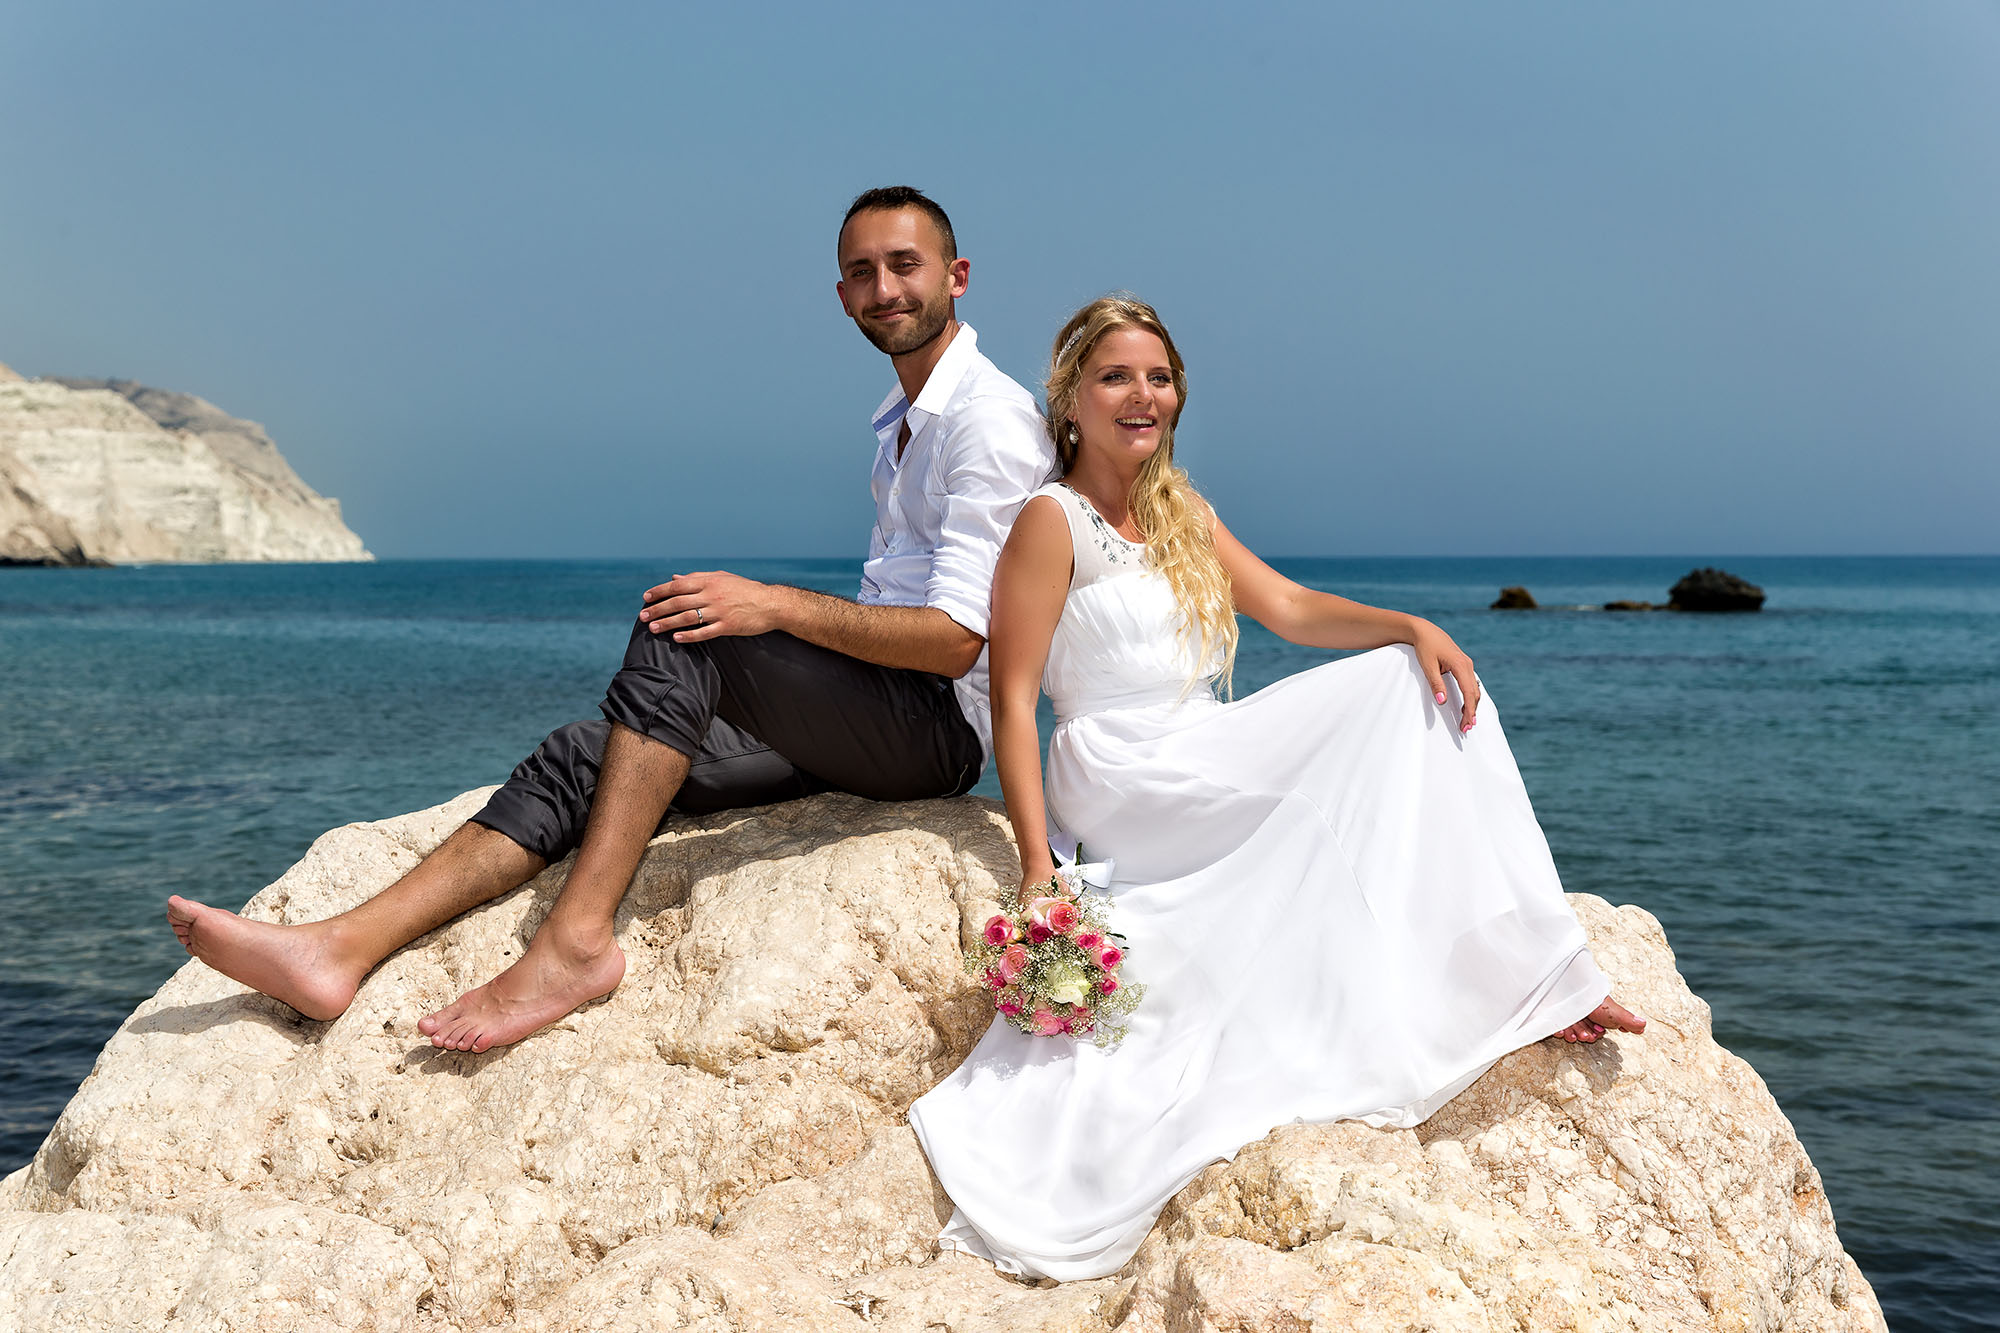 Romantic wedding photos taken at Aphrodite's Rock